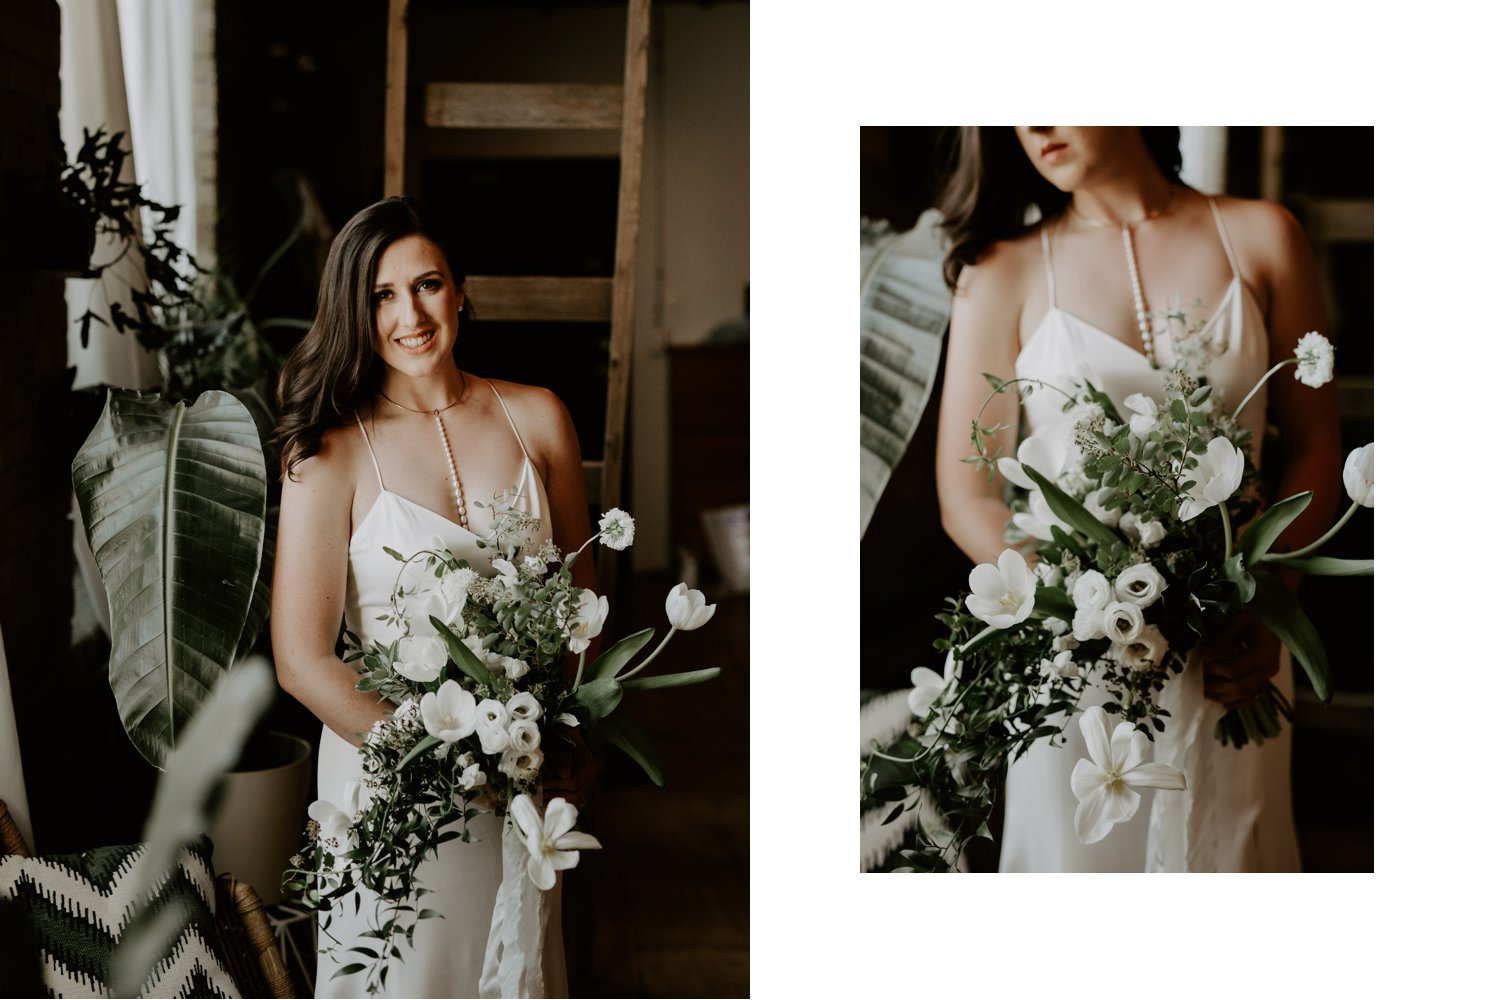 Archeo Wedding - Bride Portrait with bouqet by Florist Tanya List